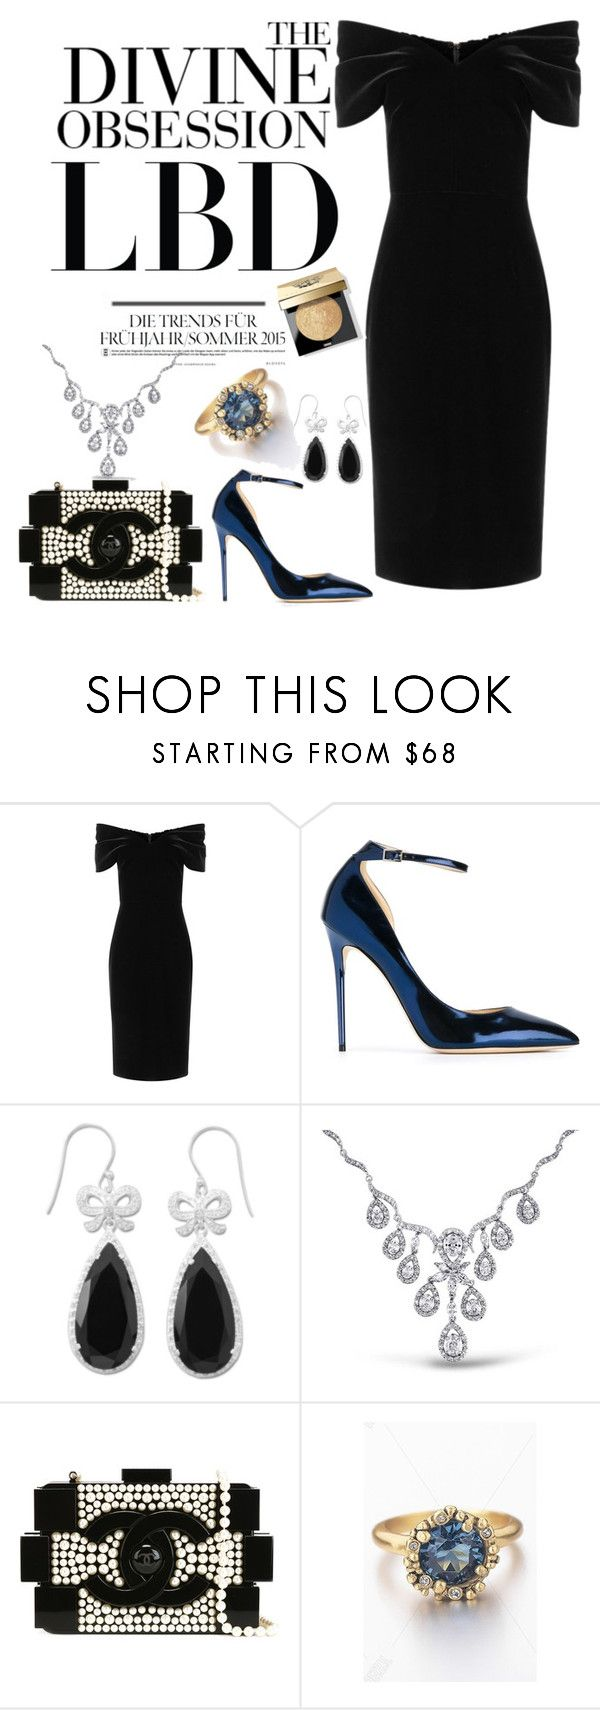 """""""The LBD"""" by tfashionspeaks ❤ liked on Polyvore featuring Emilio De La Morena, Jimmy Choo, Vera Wang, BillyTheTree, Bling Jewelry, Chanel and Bobbi Brown Cosmetics"""